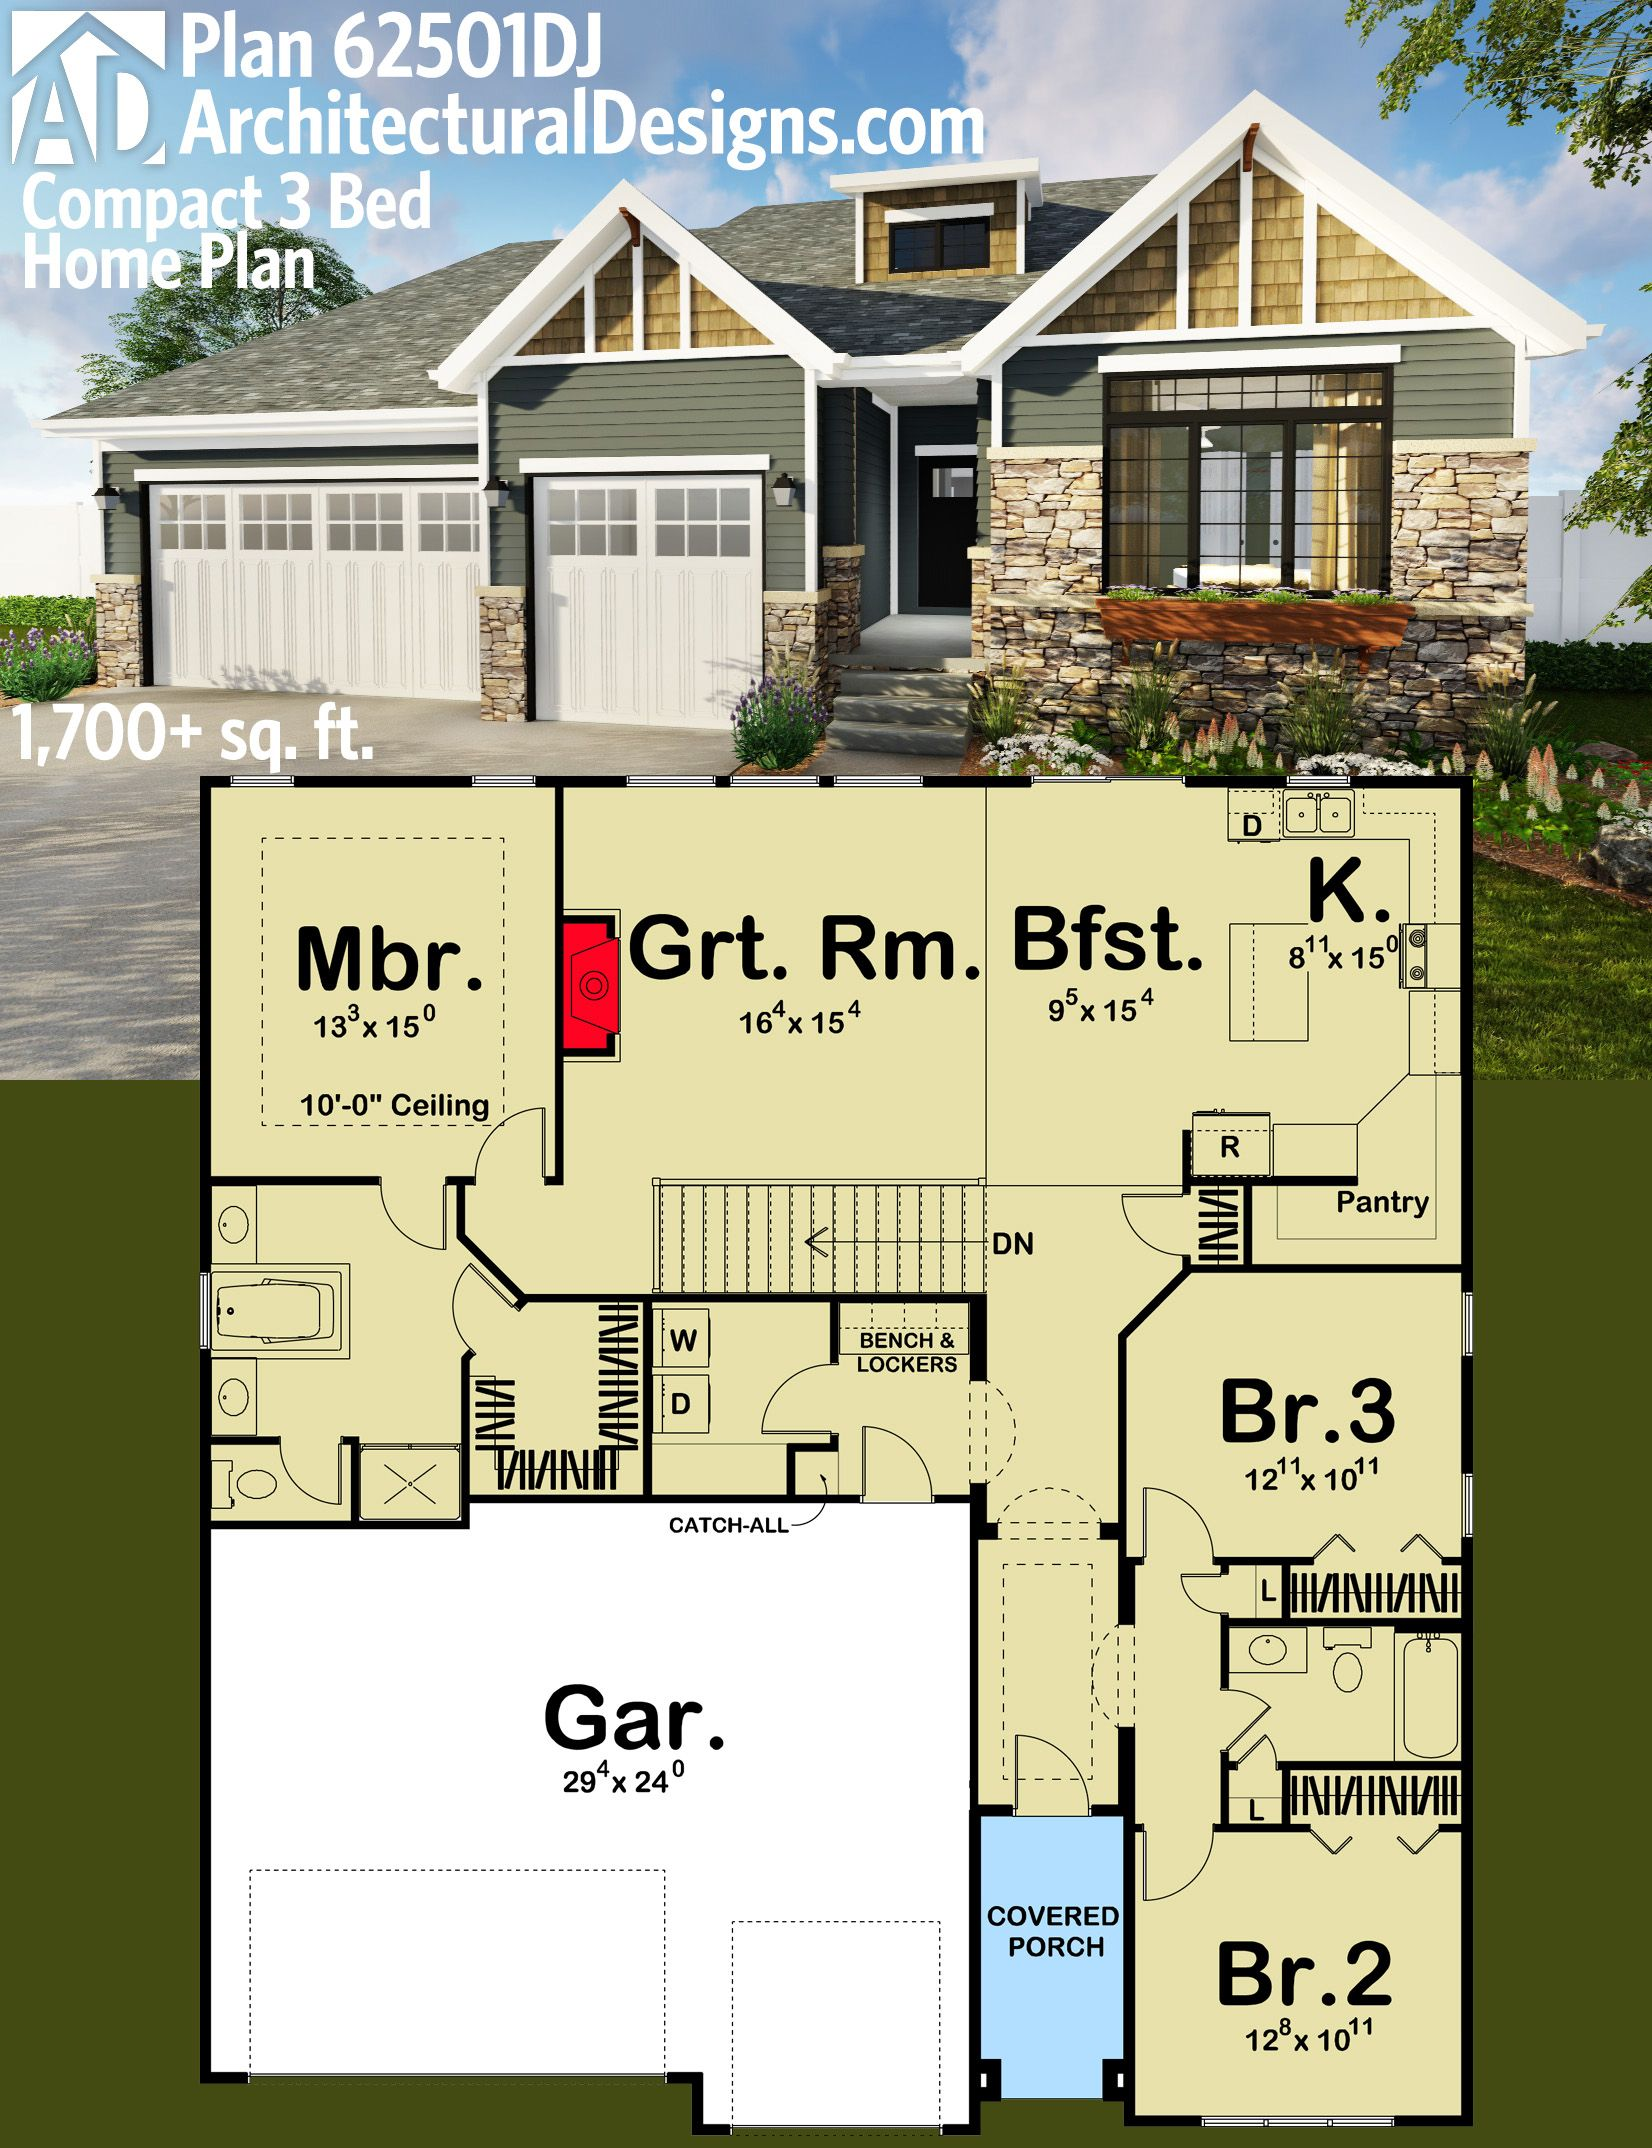 Architectural designs compact 3 bed house plan 62501dj for 5000 square feet in square meters